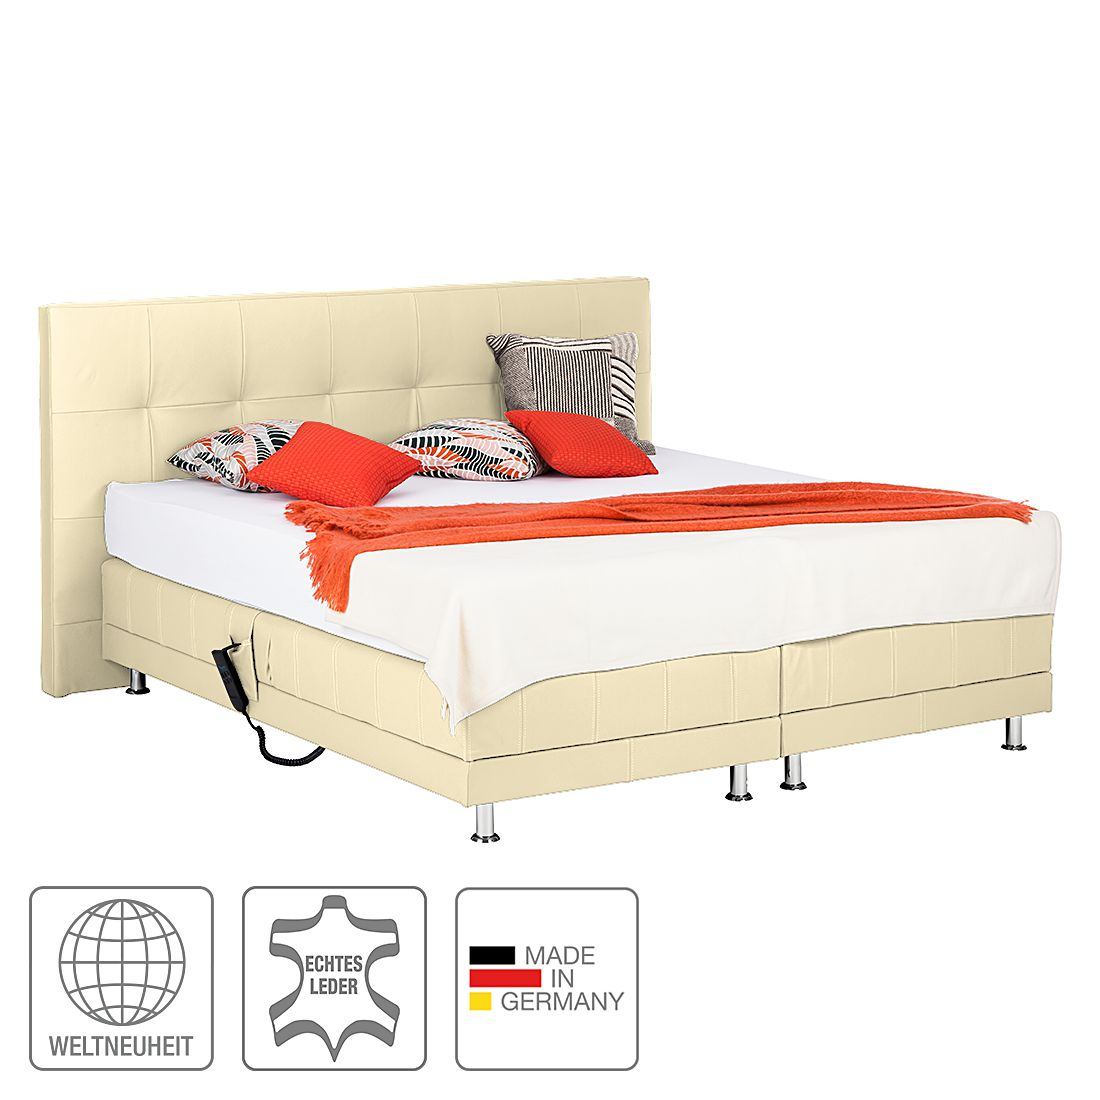 boxspringbett denver echtleder ohne topper 200 x 200cm h2 bis 80 kg beige art of. Black Bedroom Furniture Sets. Home Design Ideas